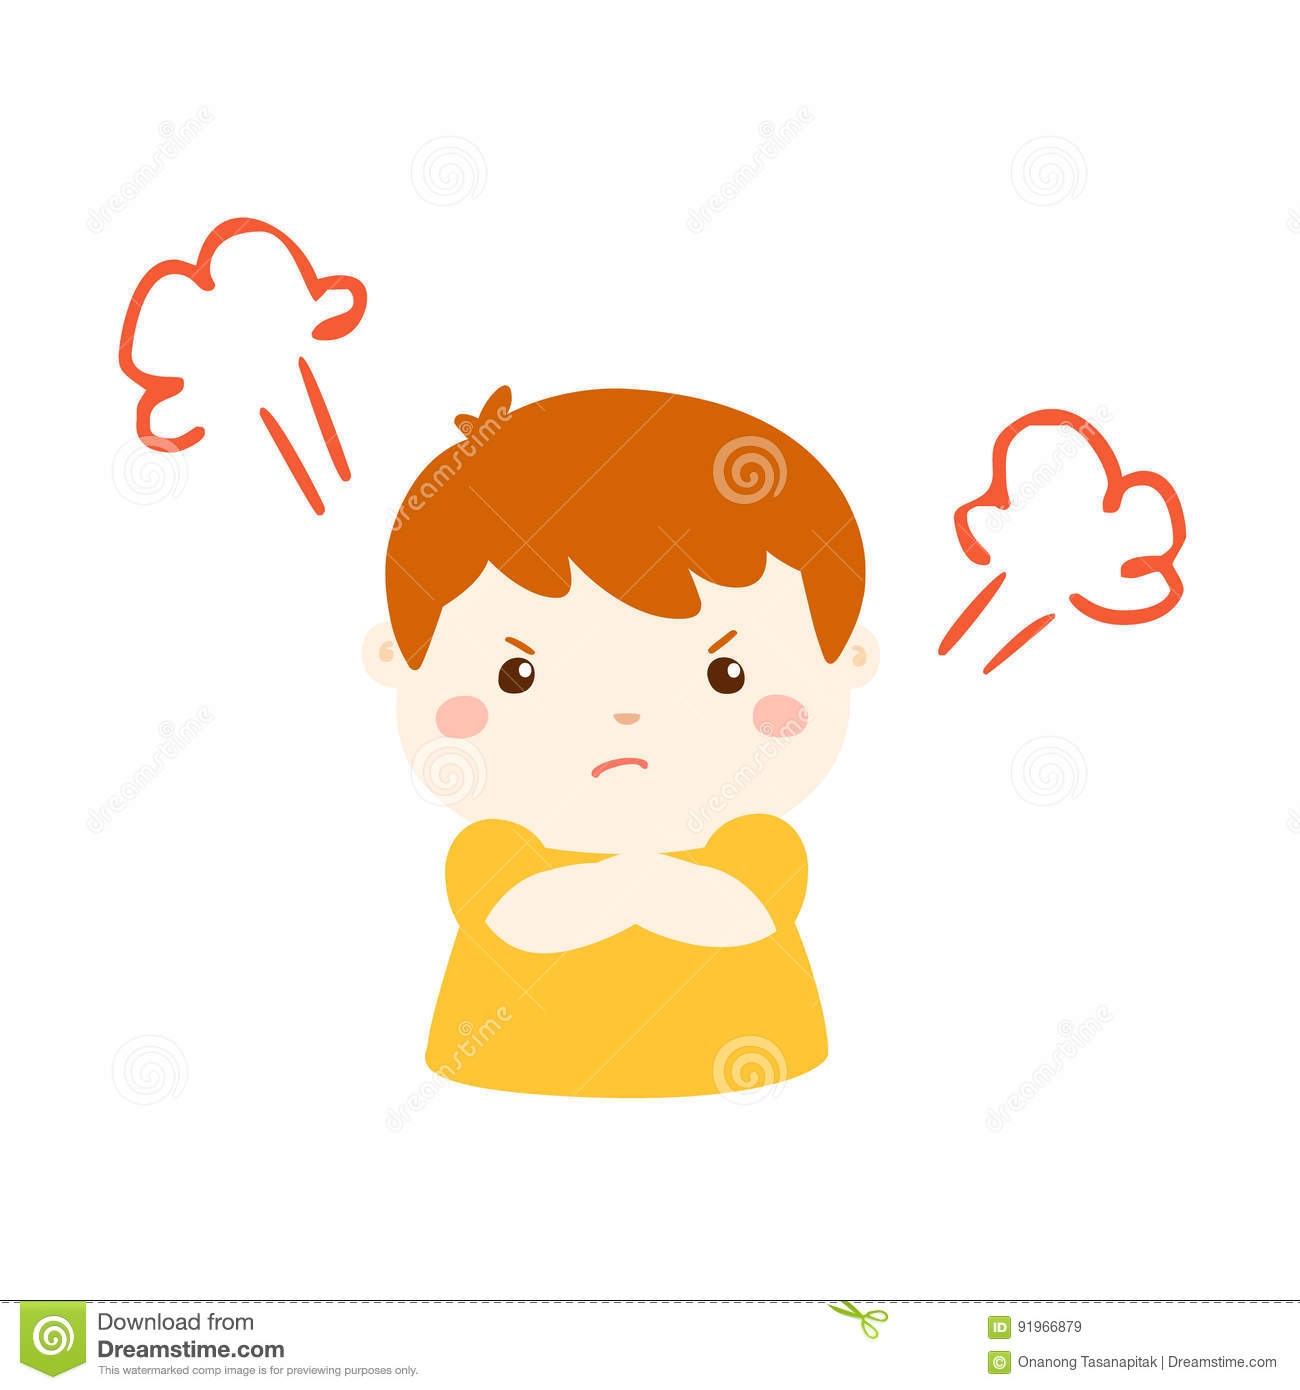 Cute Cartoon Angry Boy Character Stock Vector Illustration Of Feeling Irate 91966879